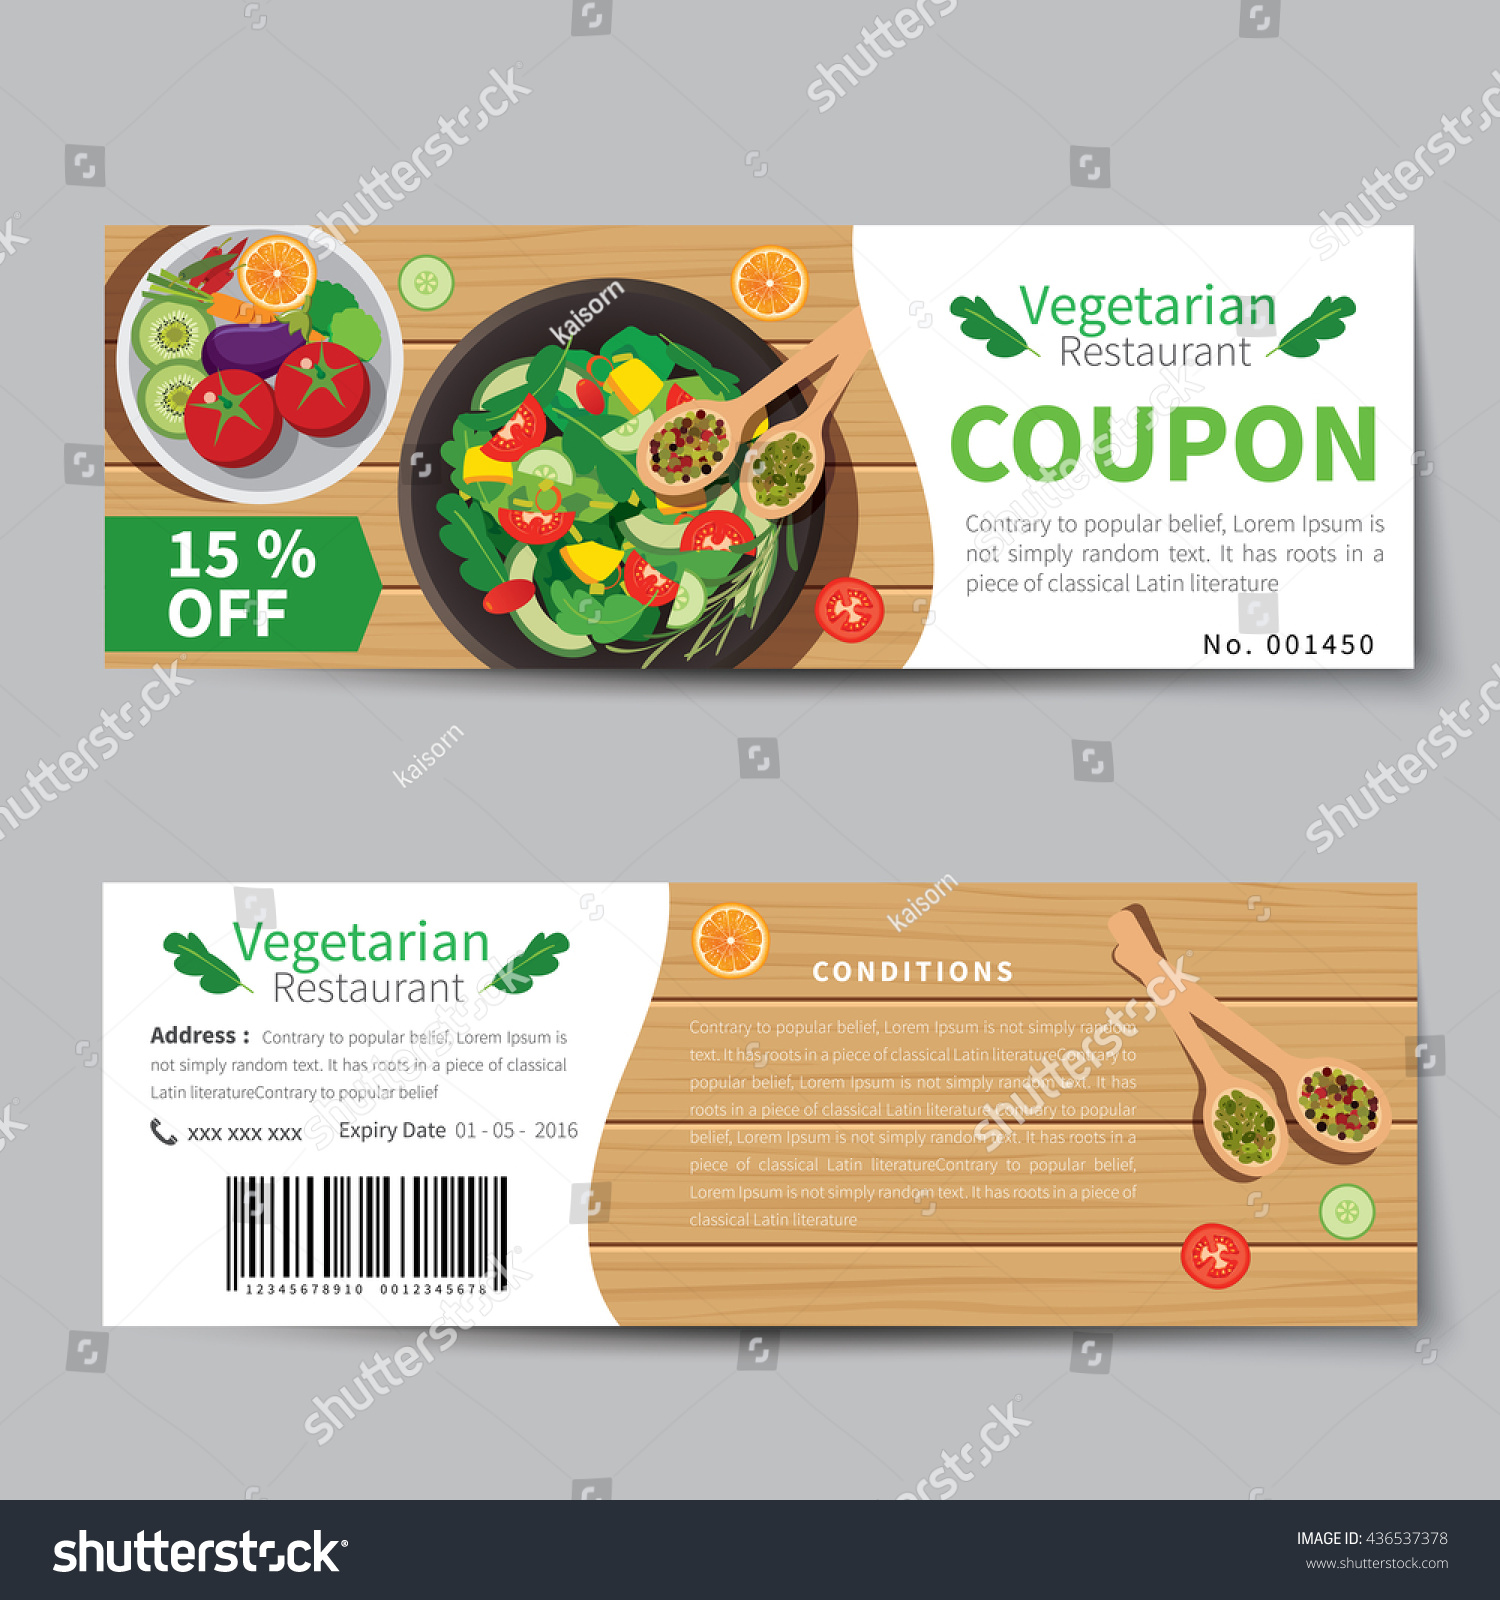 cover letter template to whom it concernbabysitting vouchers vegetarian food coupon discount template flat stock vector lunch coupon template